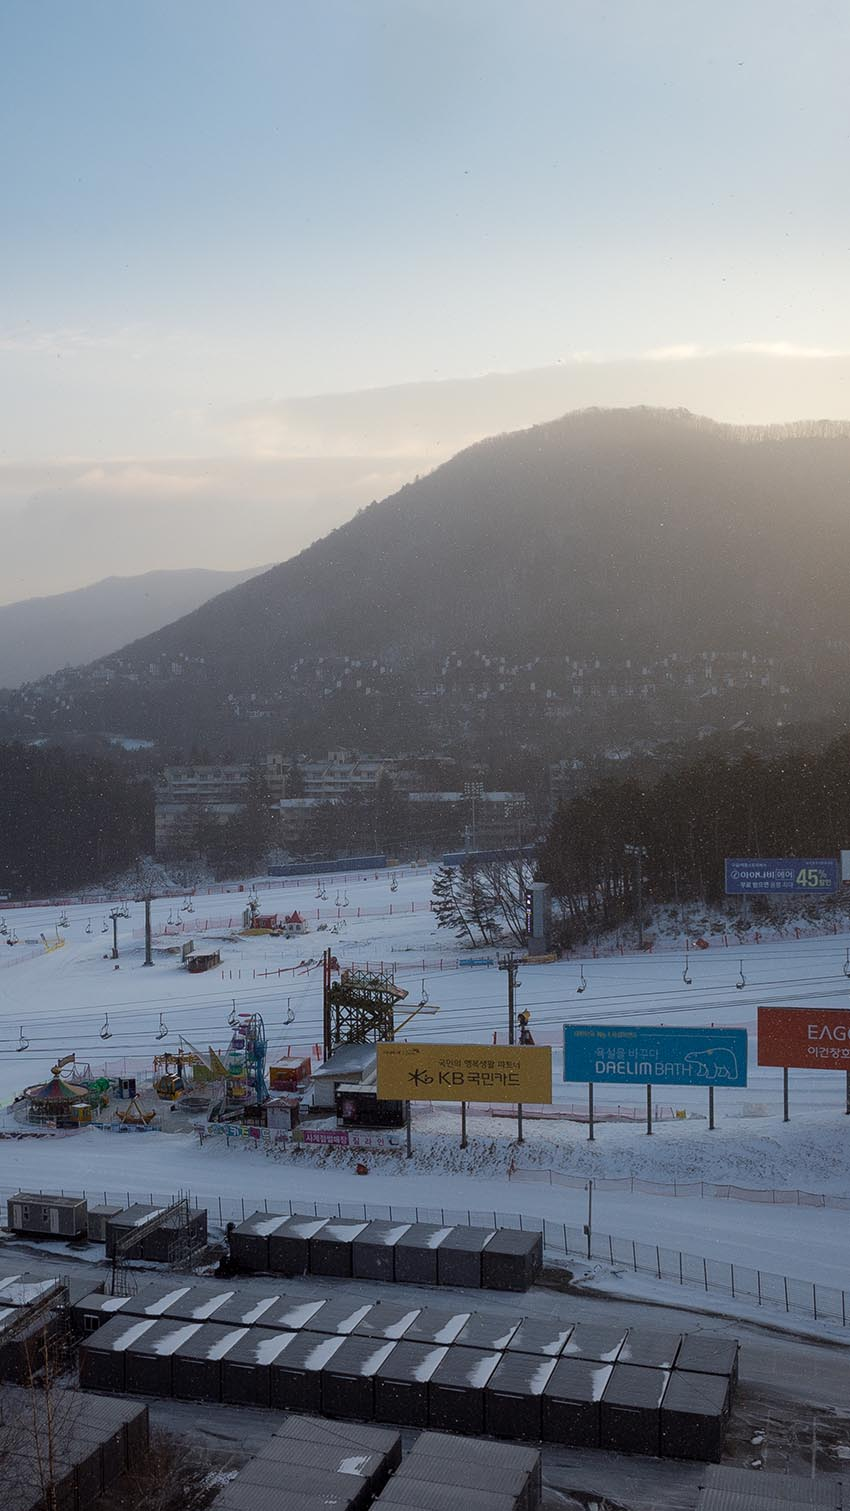 Temporary structures built for the 2018 Olympics are seen at the base of a ski hill at Yongpyong Ski Resort.